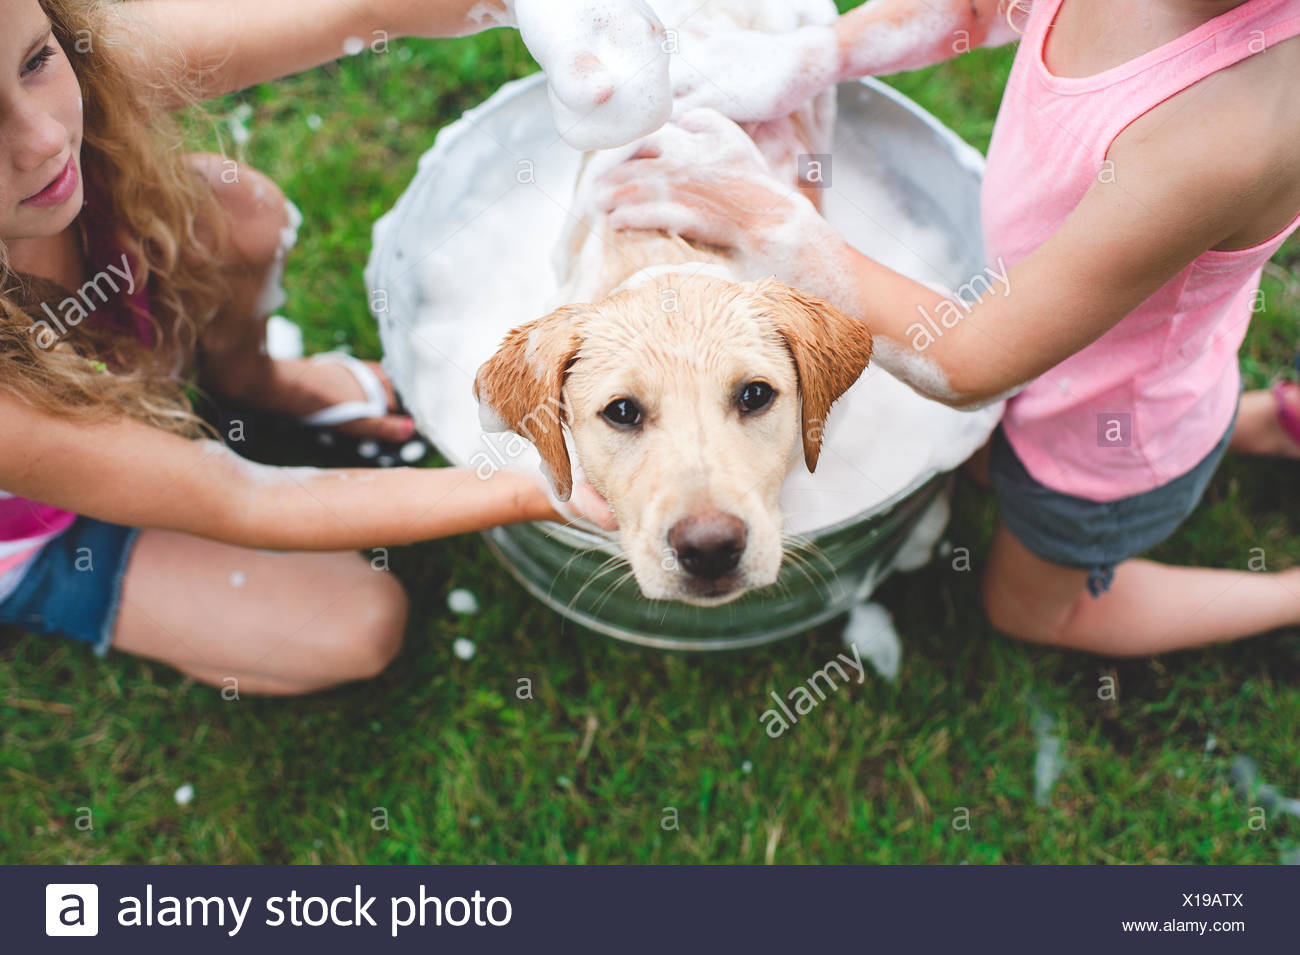 Labrador Retriever puppy in bucket looking up - Stock Image